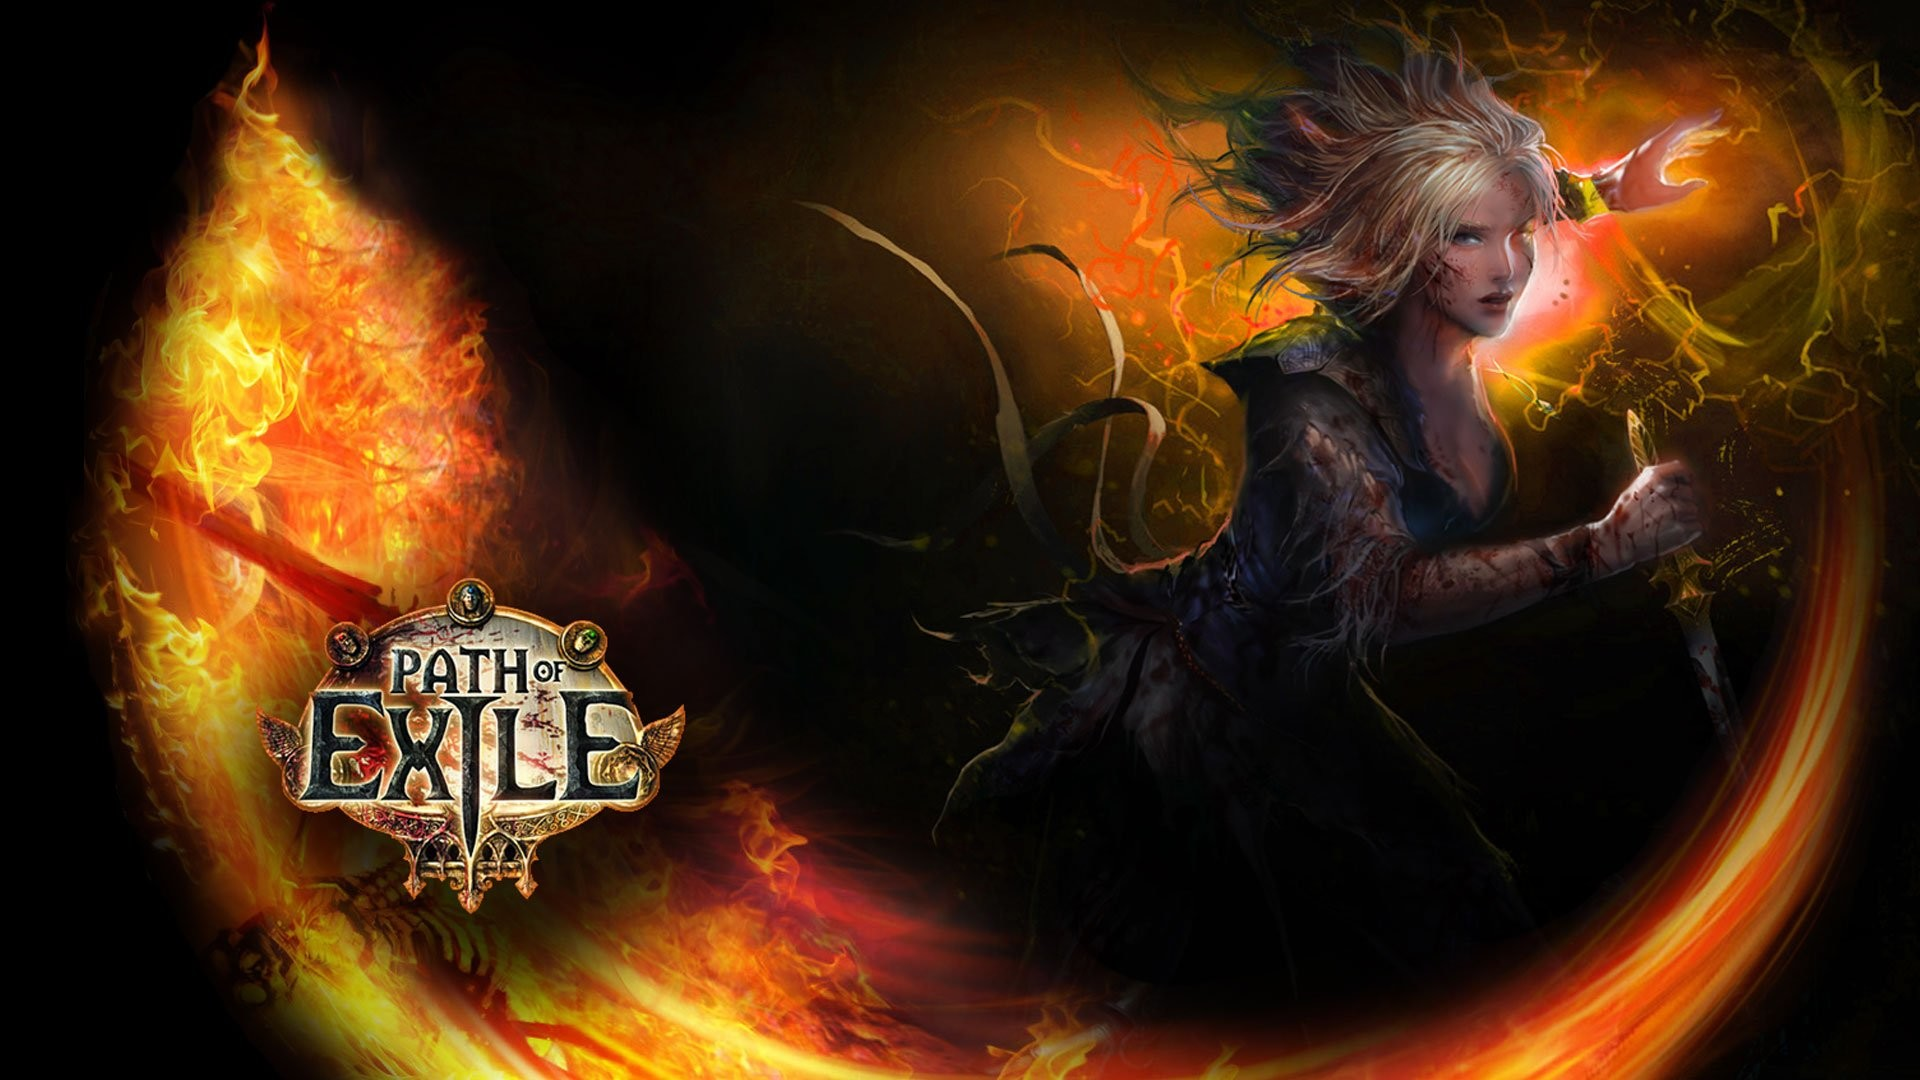 Poe Fall Of Oriath Wallpaper Path Of Exile Wallpapers 80 Background Pictures